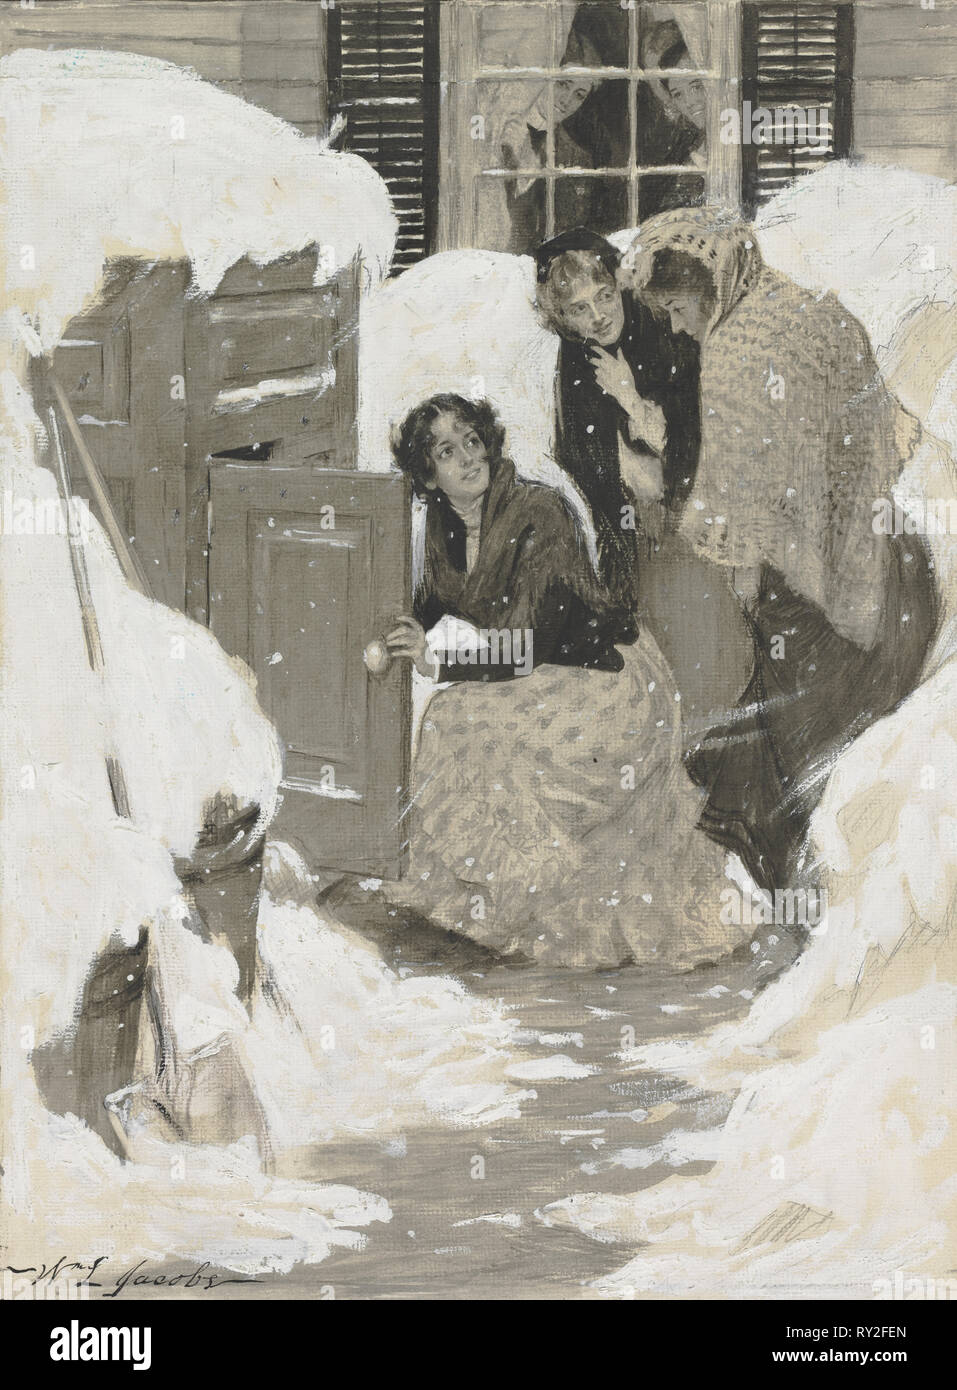 Sketch for a Book Illustration. William Leroy Jacobs (American, 1869-1917). Watercolor - Stock Image